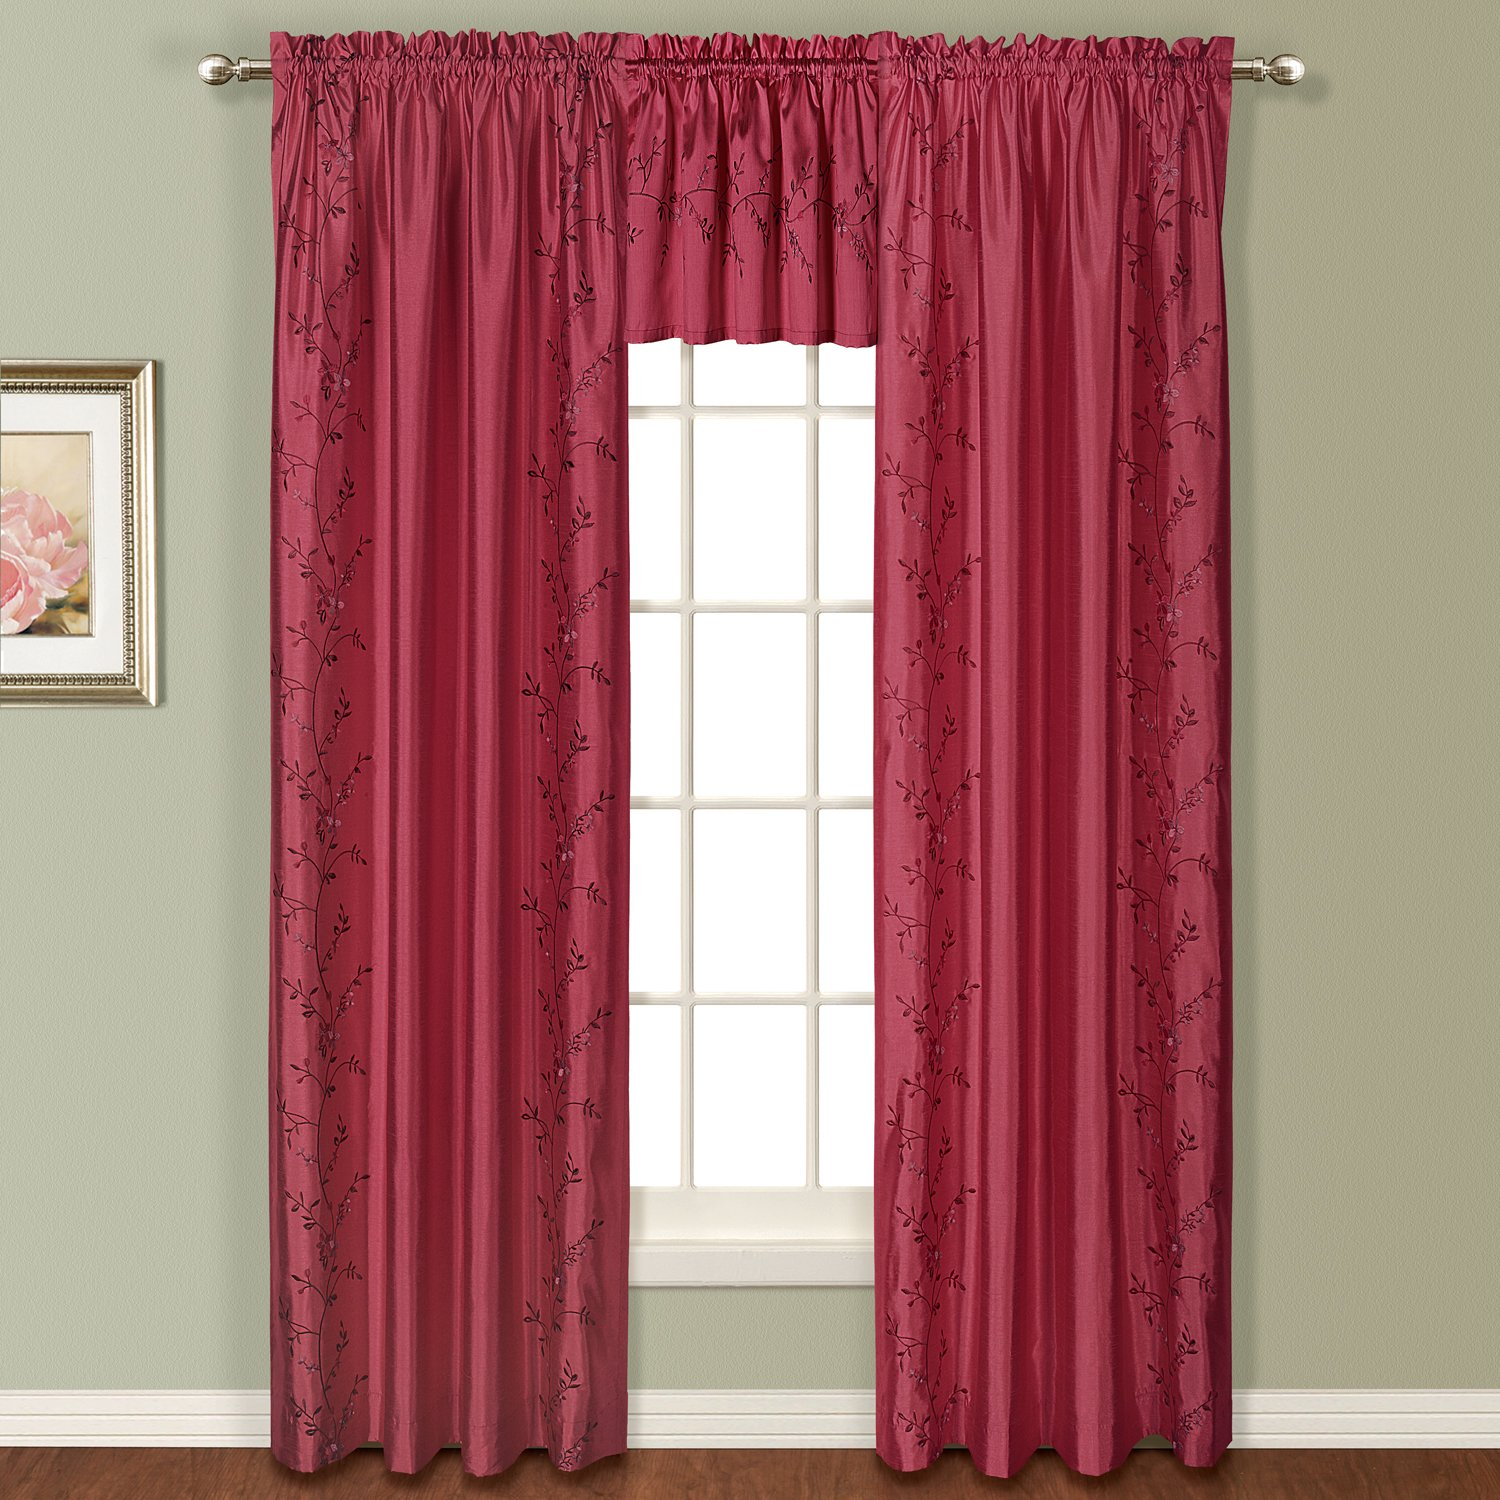 United Curtain Addison Window Curtain Panel, 54 by 63-Inch, Burgundy